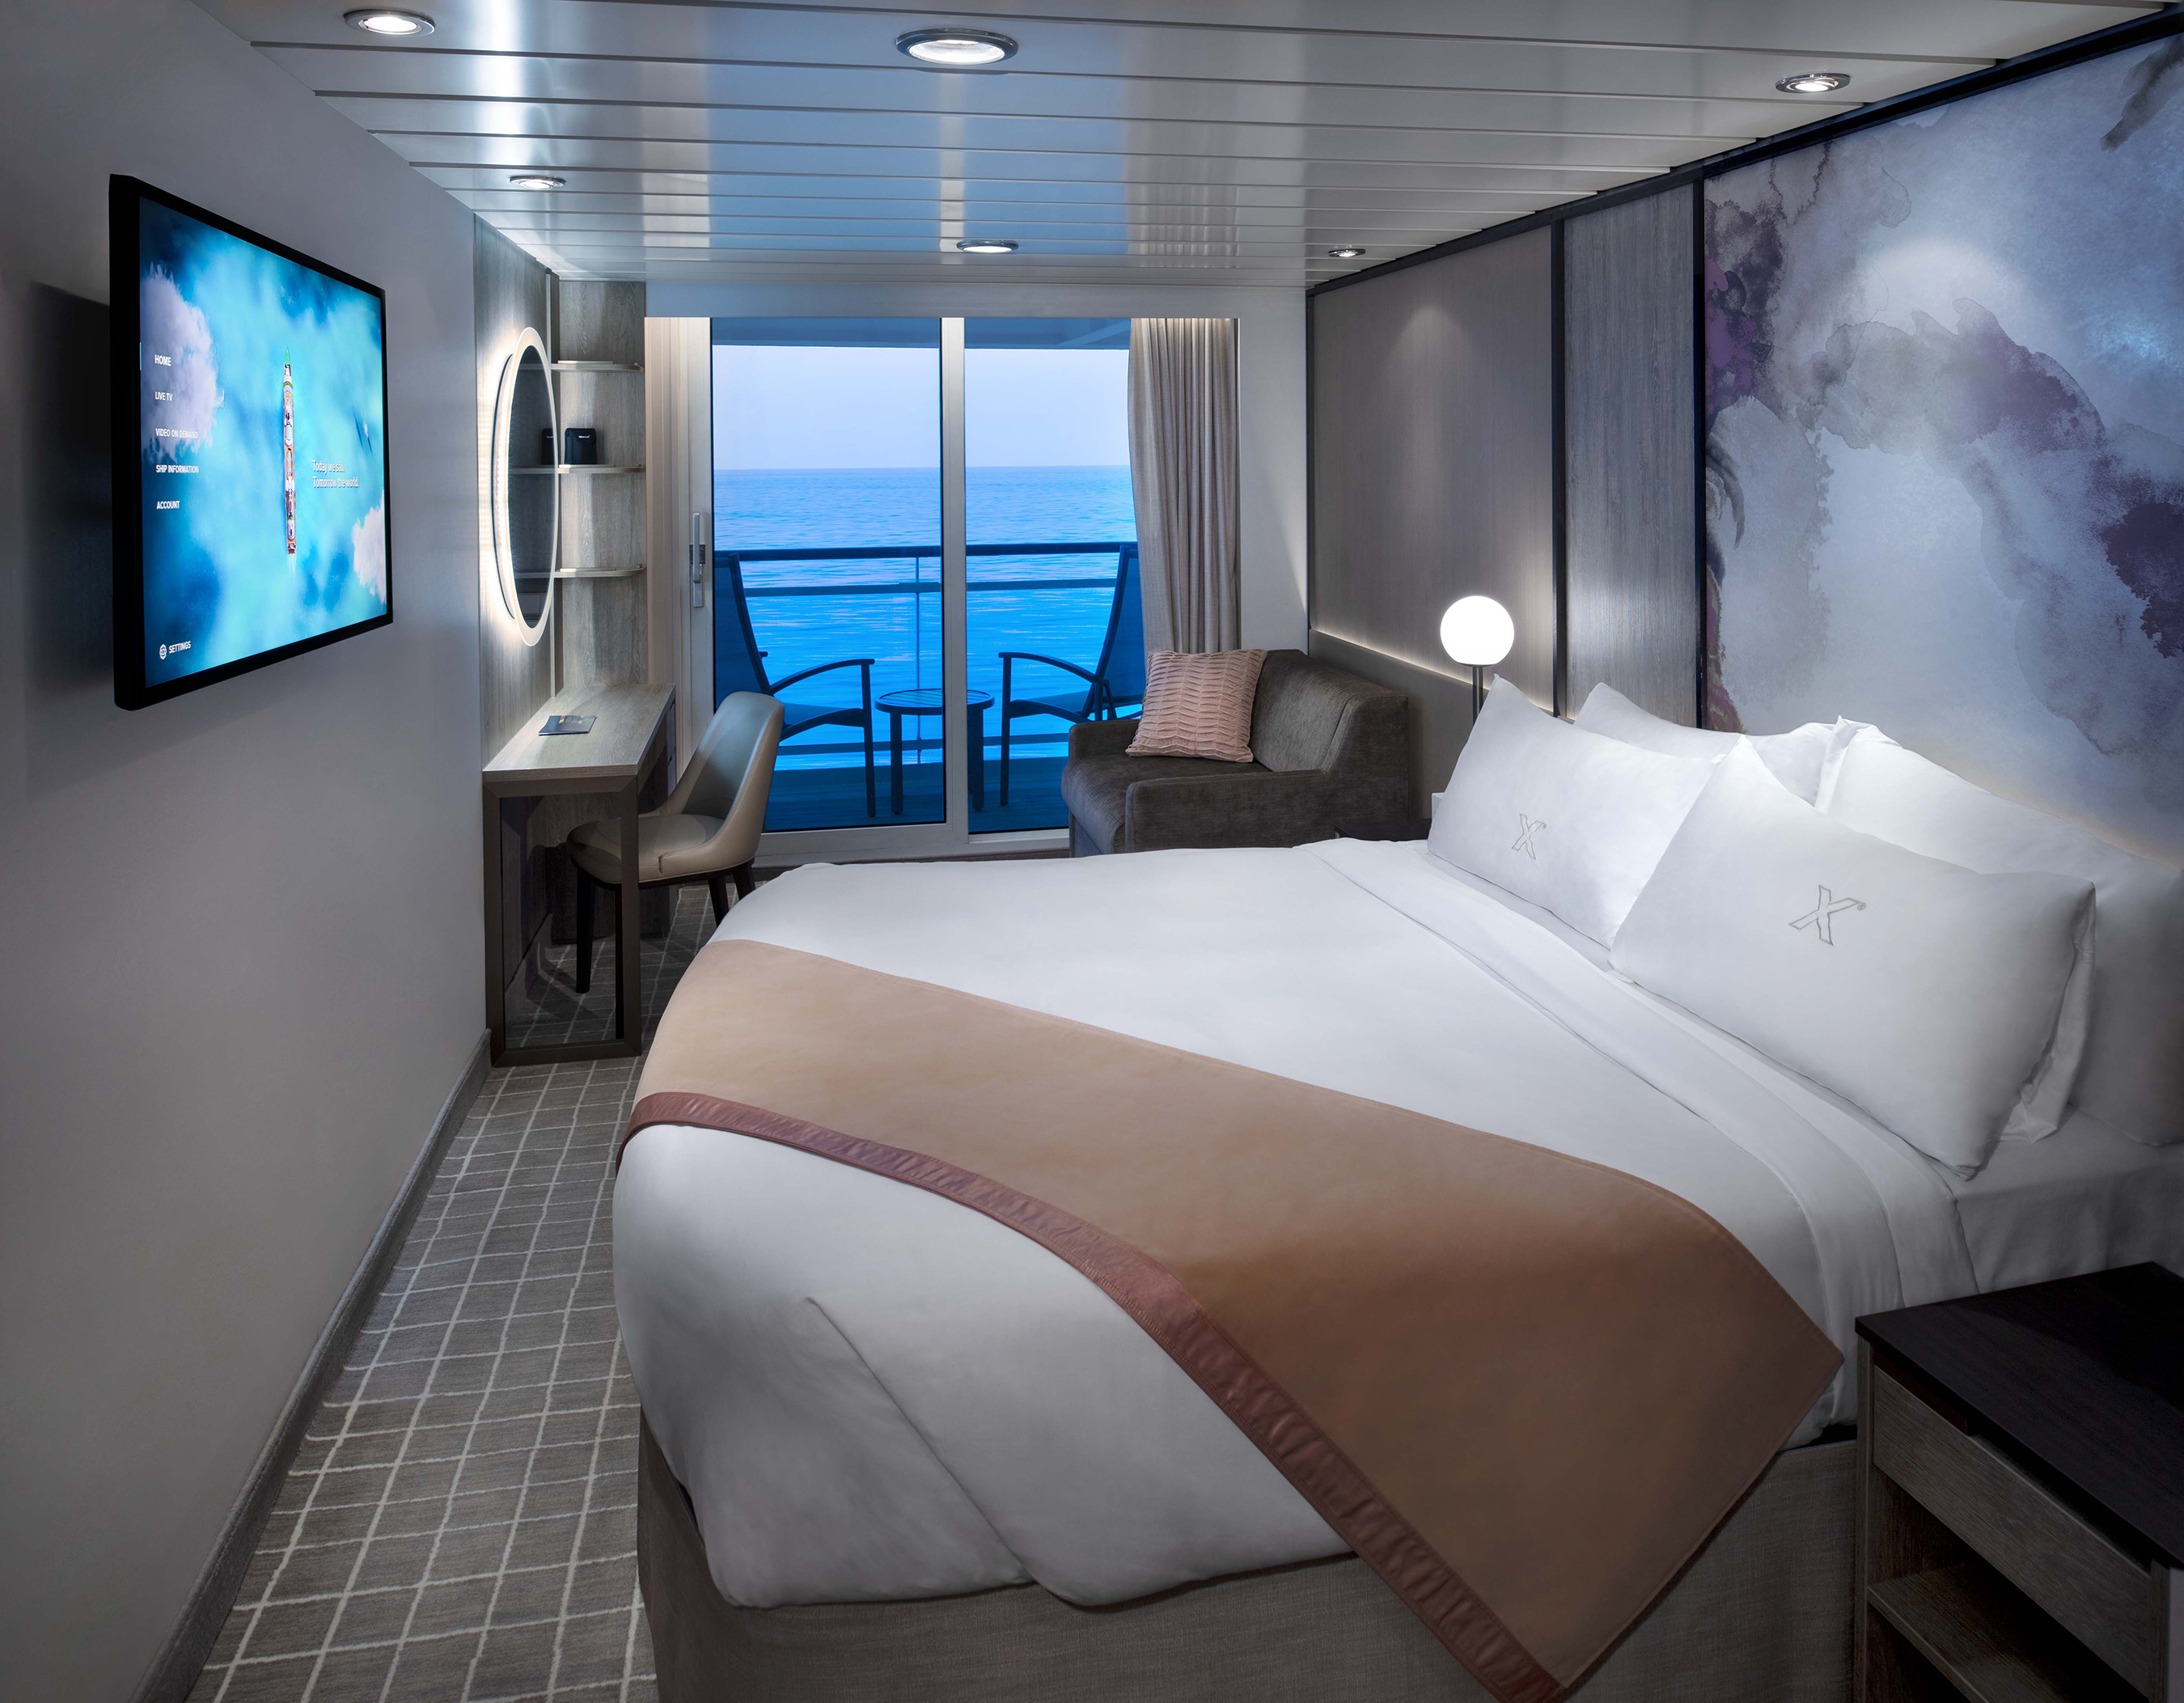 Celebrity Cruises worked hand-in-hand with international hospitality design firm Hirsch Bedner Associates (HBA) to transform the Millennium Series staterooms as part The Celebrity Revolution.